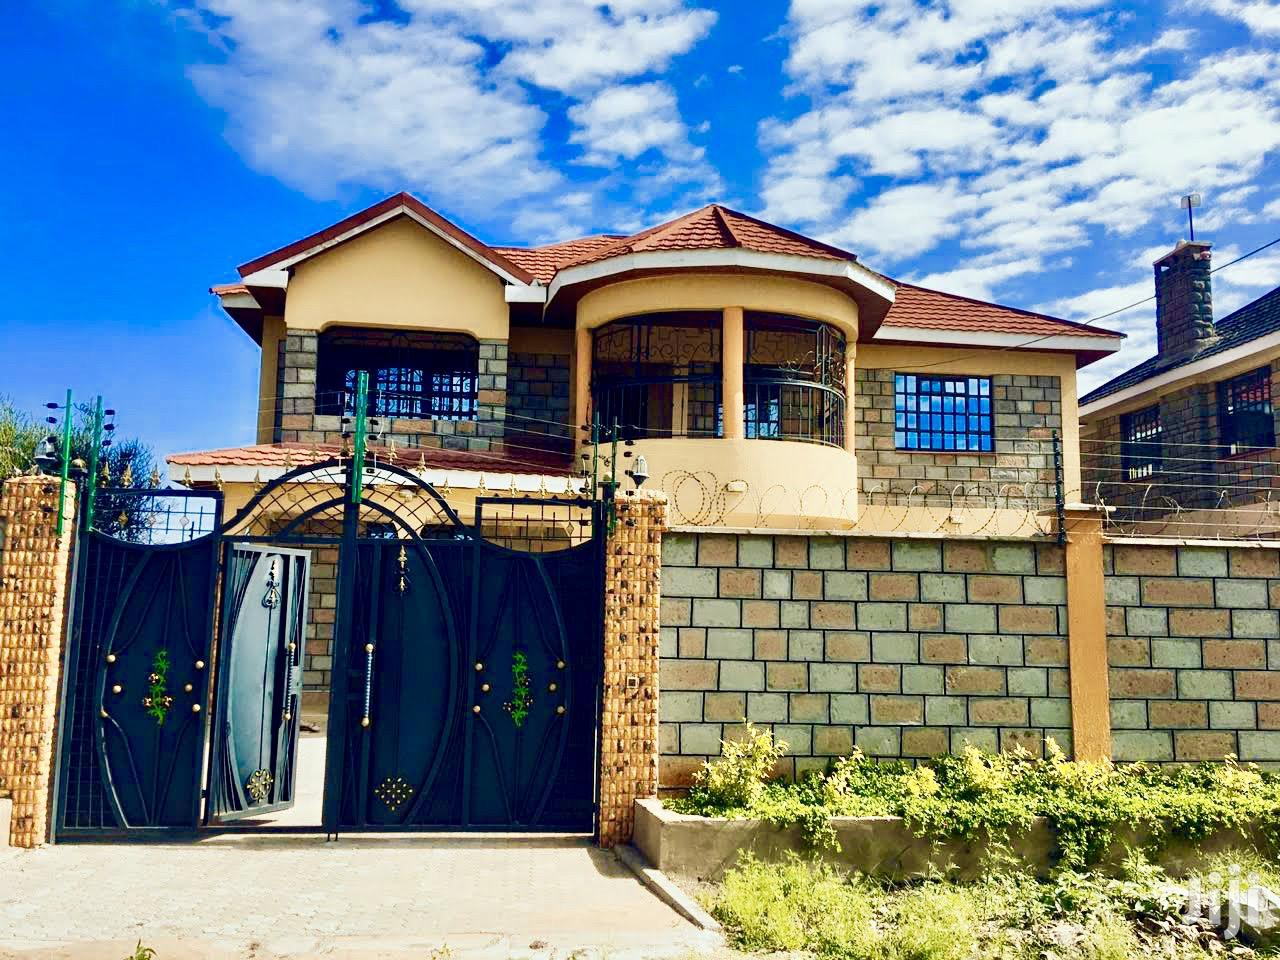 Archive 5 Bedroom House To Let In Syokimau In Syokimau Houses Apartments For Rent Malik Bill Jiji Co Ke